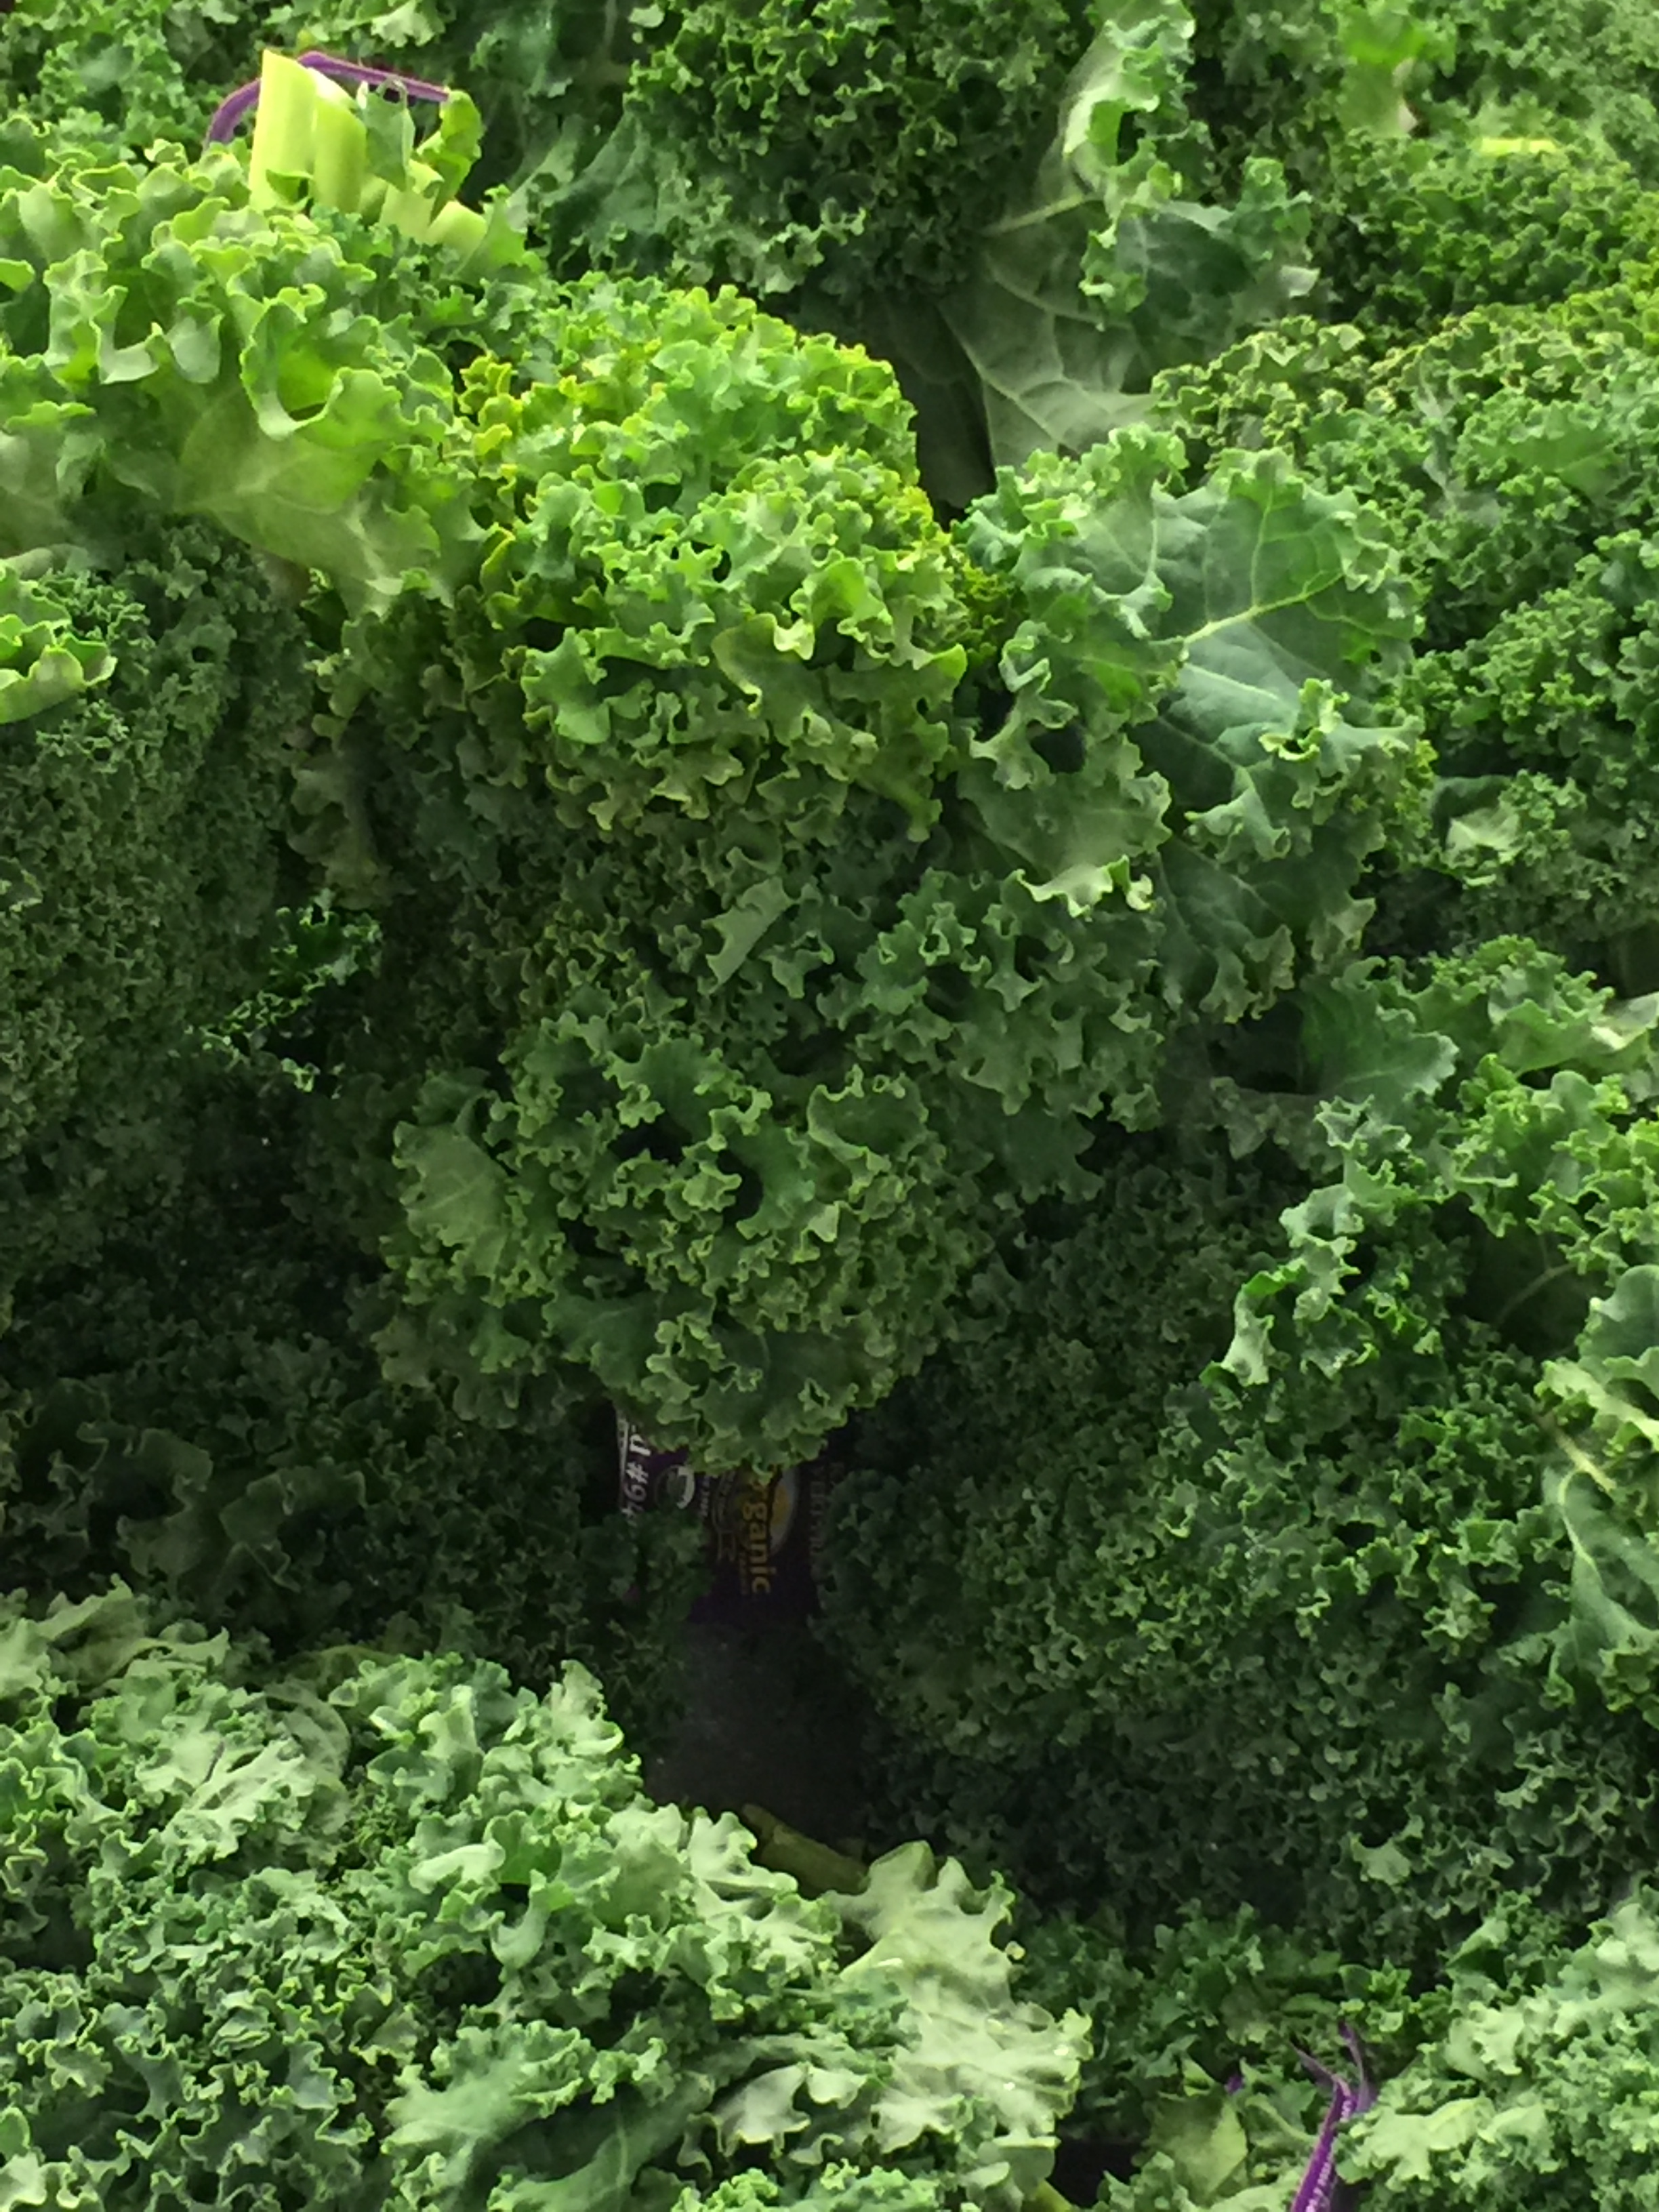 Green Vegetable -Naturally low in fat and calories